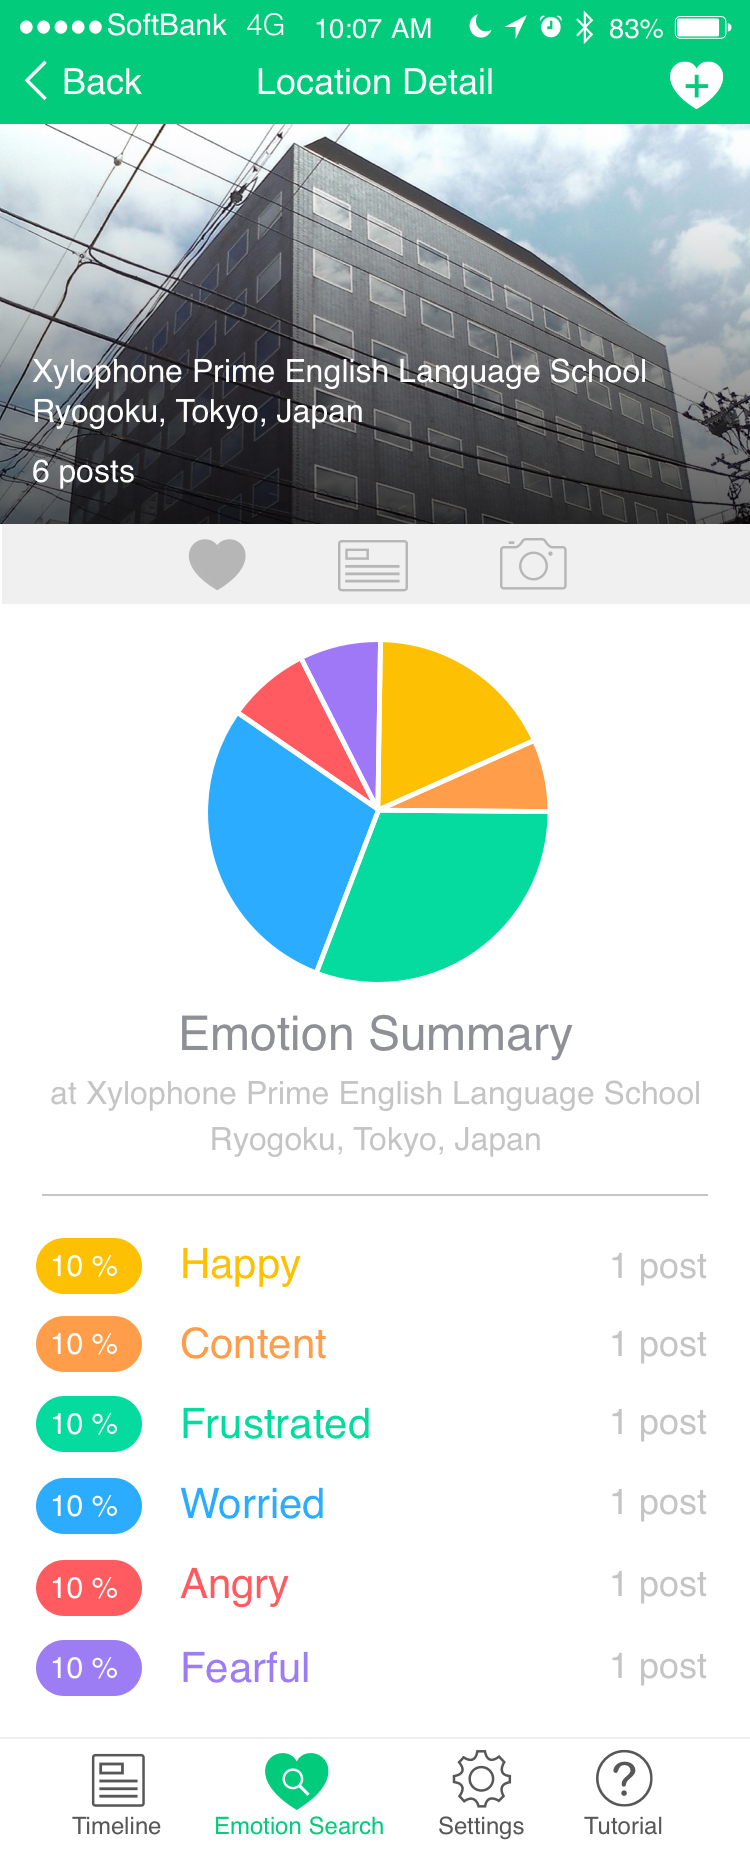 Emotion search / by location / detail